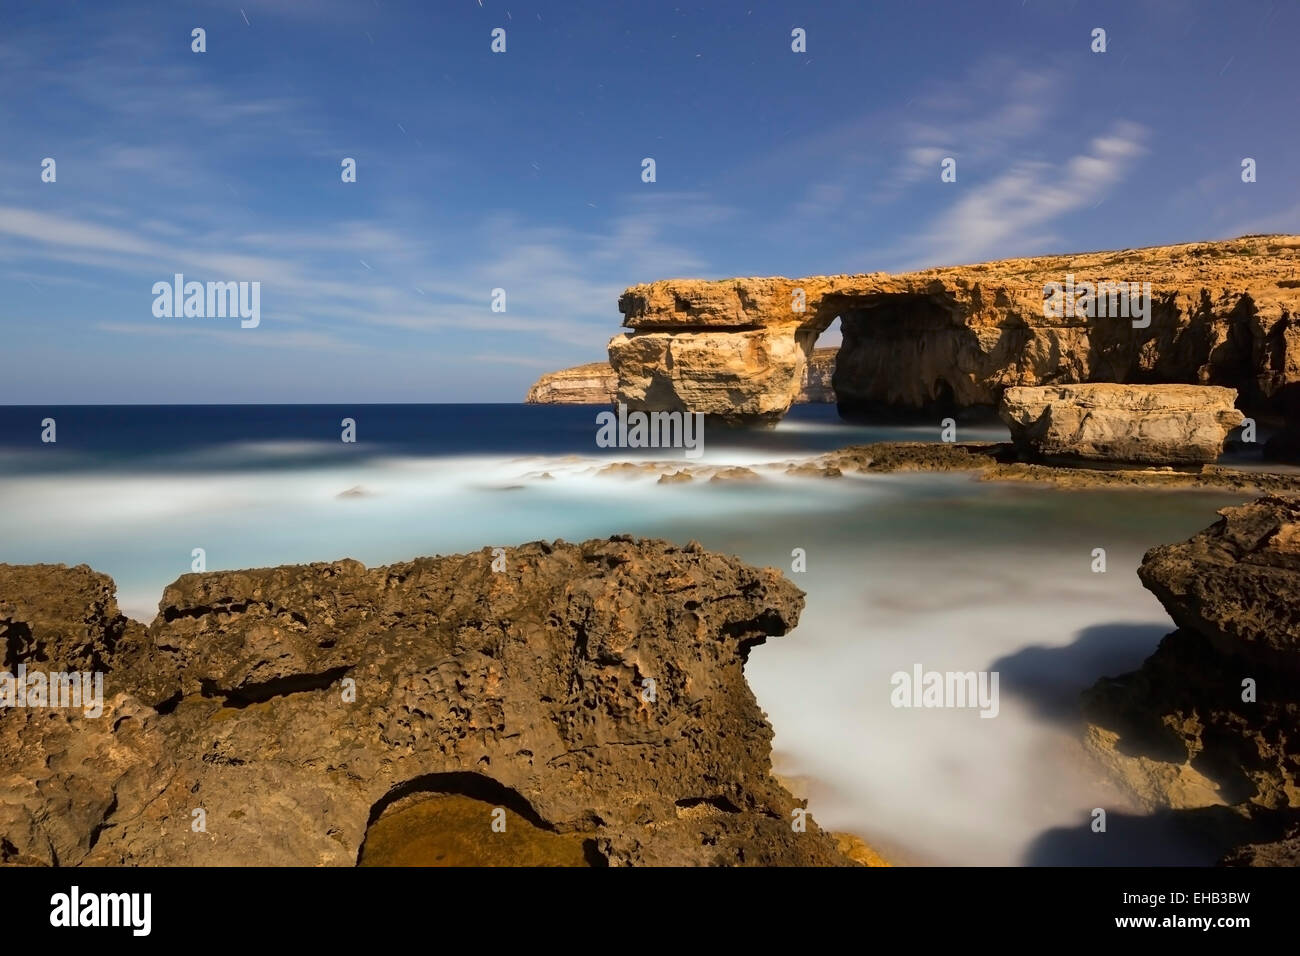 Mediterranean Europe, Malta, Gozo Island, Dwerja Bay, The Azure Window natural arch - Stock Image